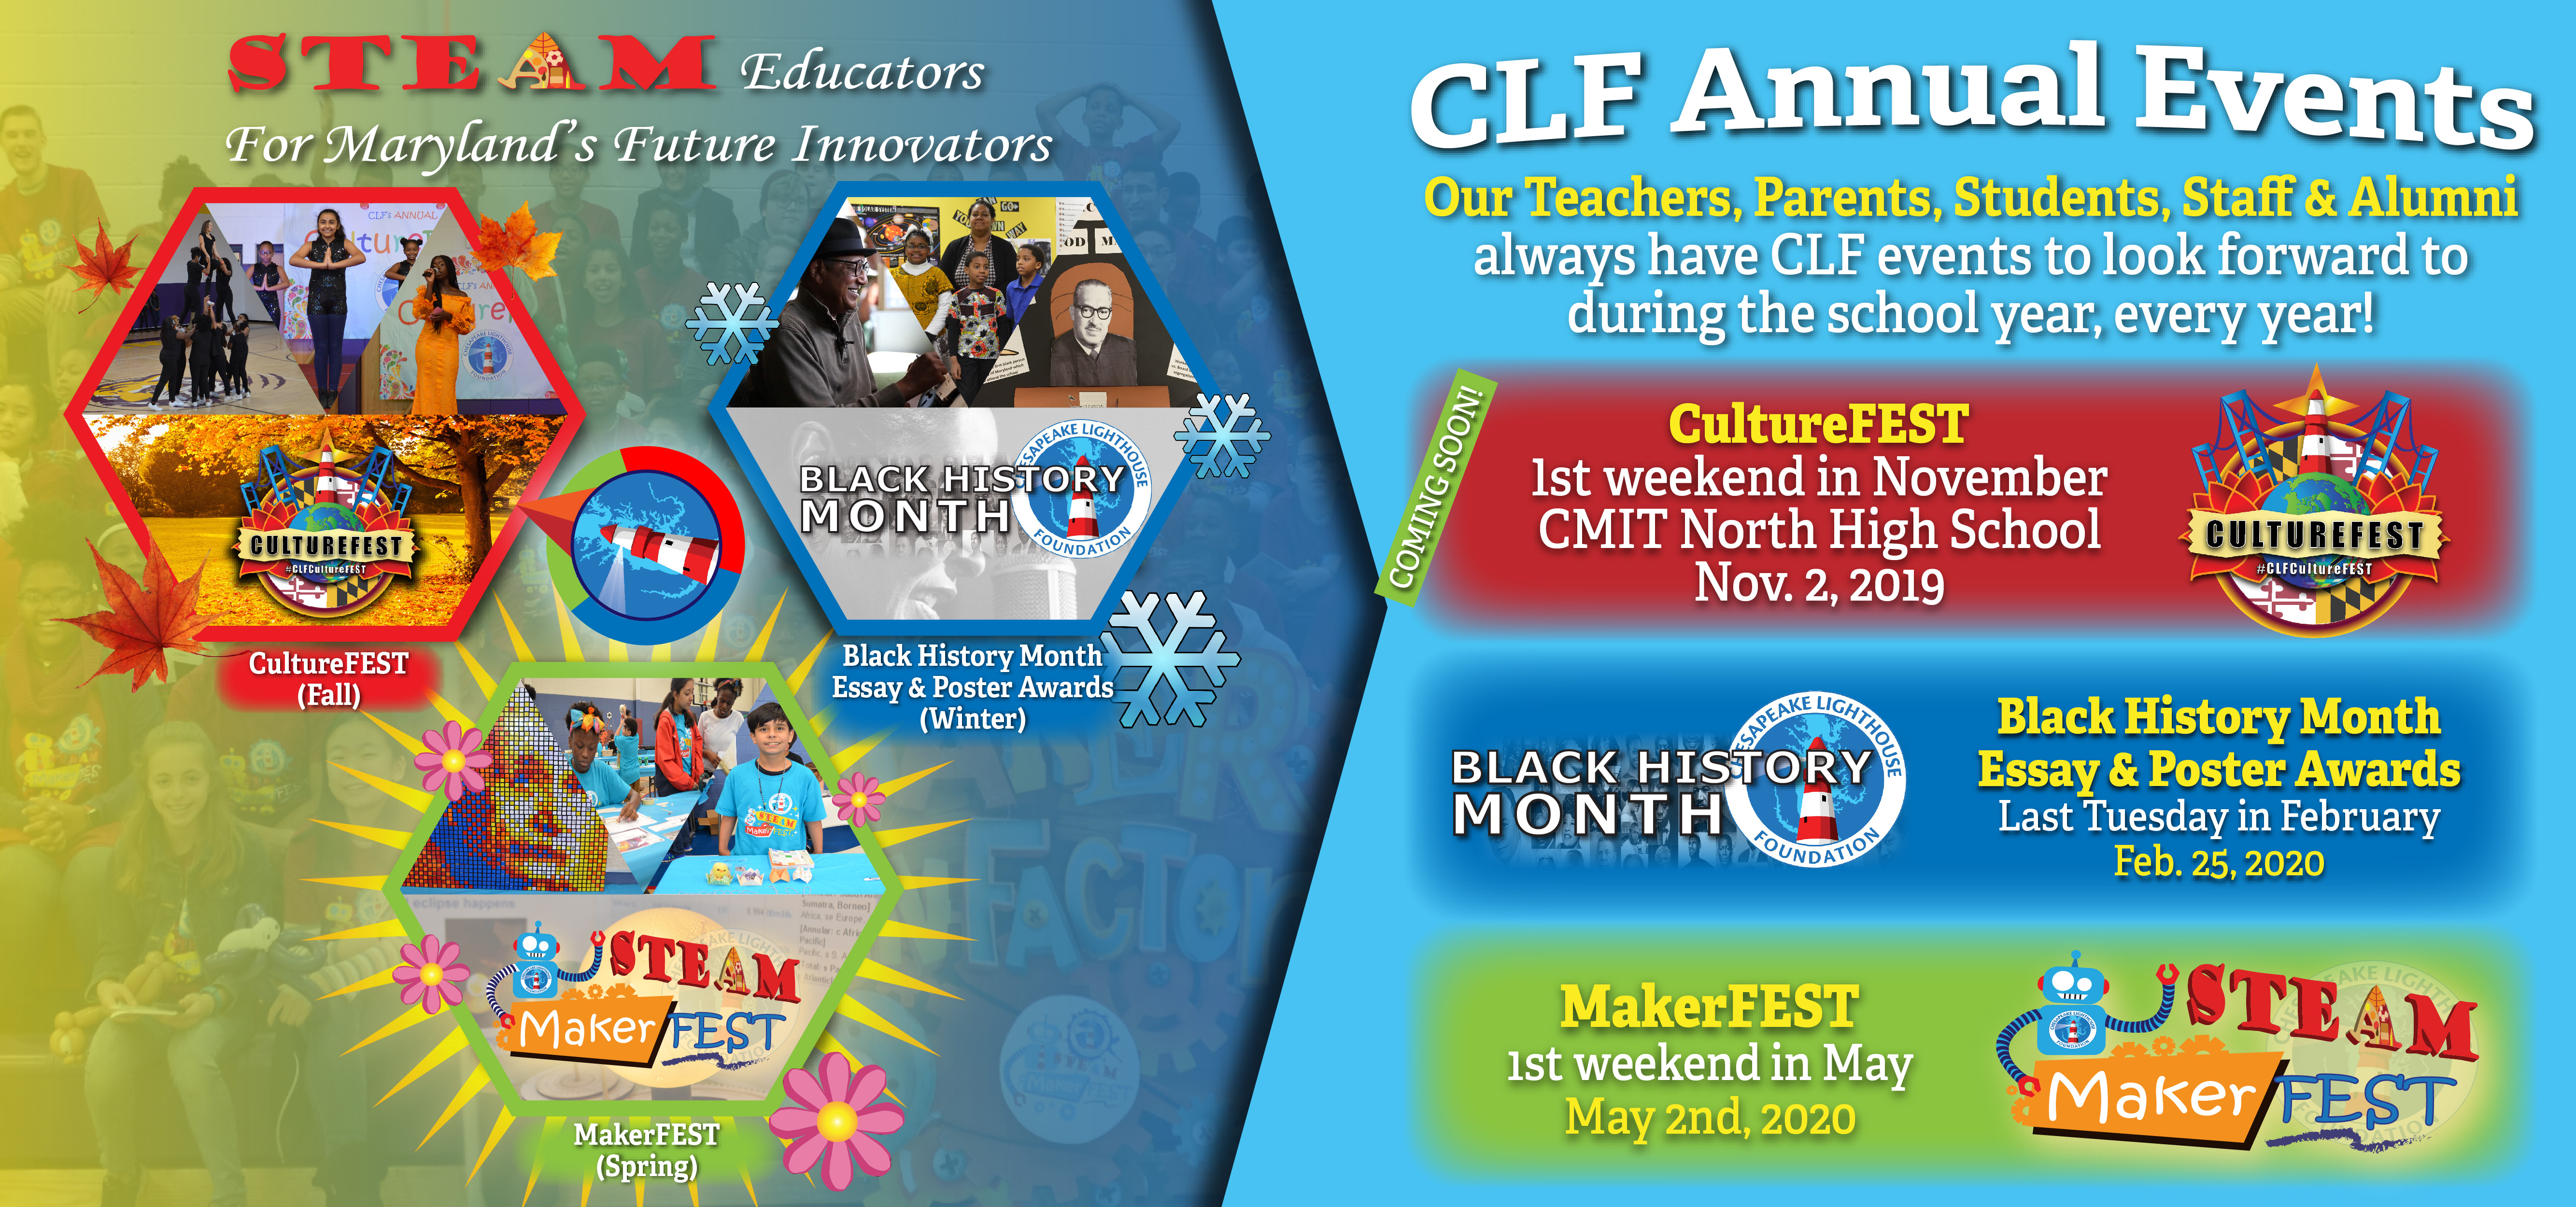 CLF Annual Events